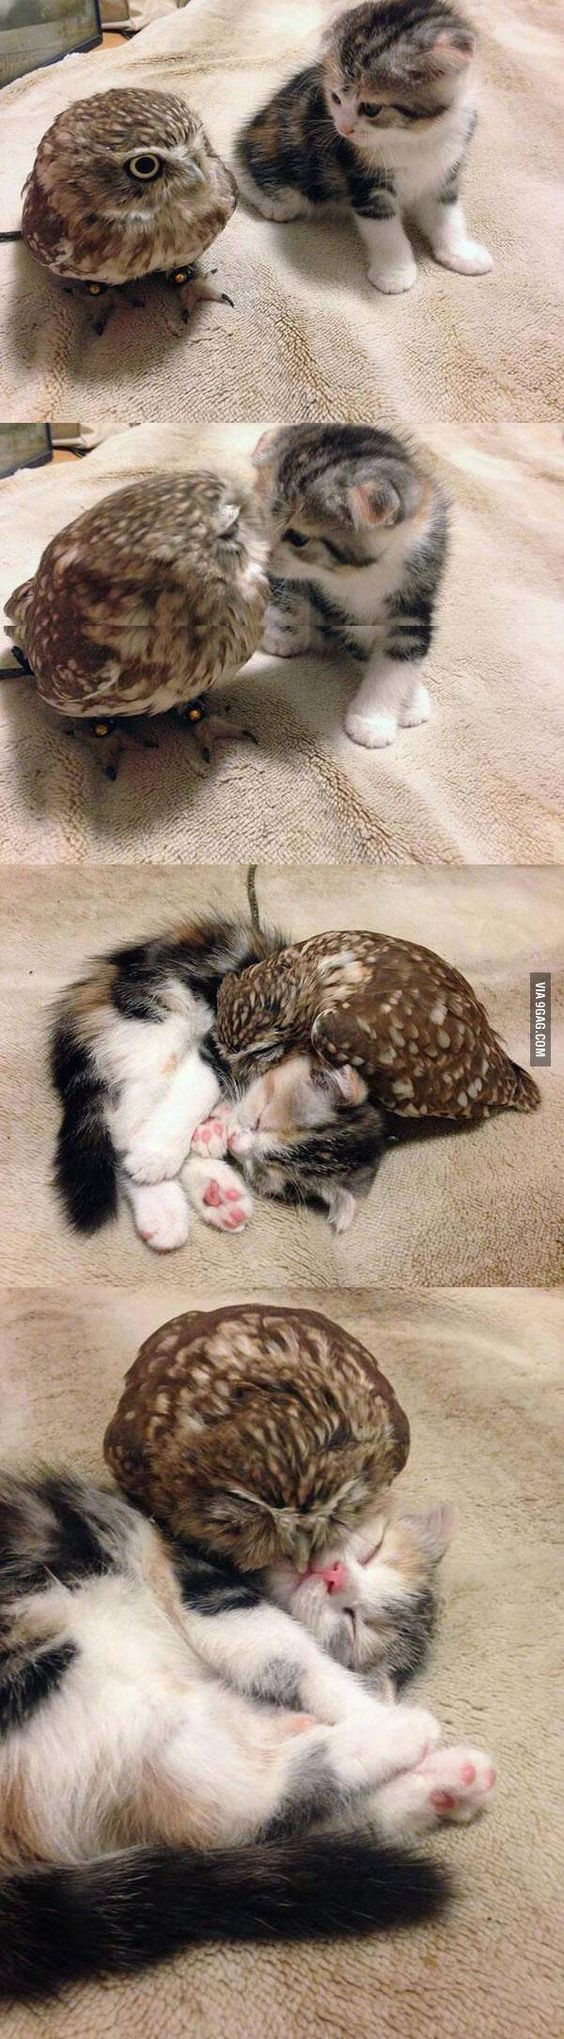 Tiny-owl-and-tiny-kitten-wallpaper-wp44012239-1